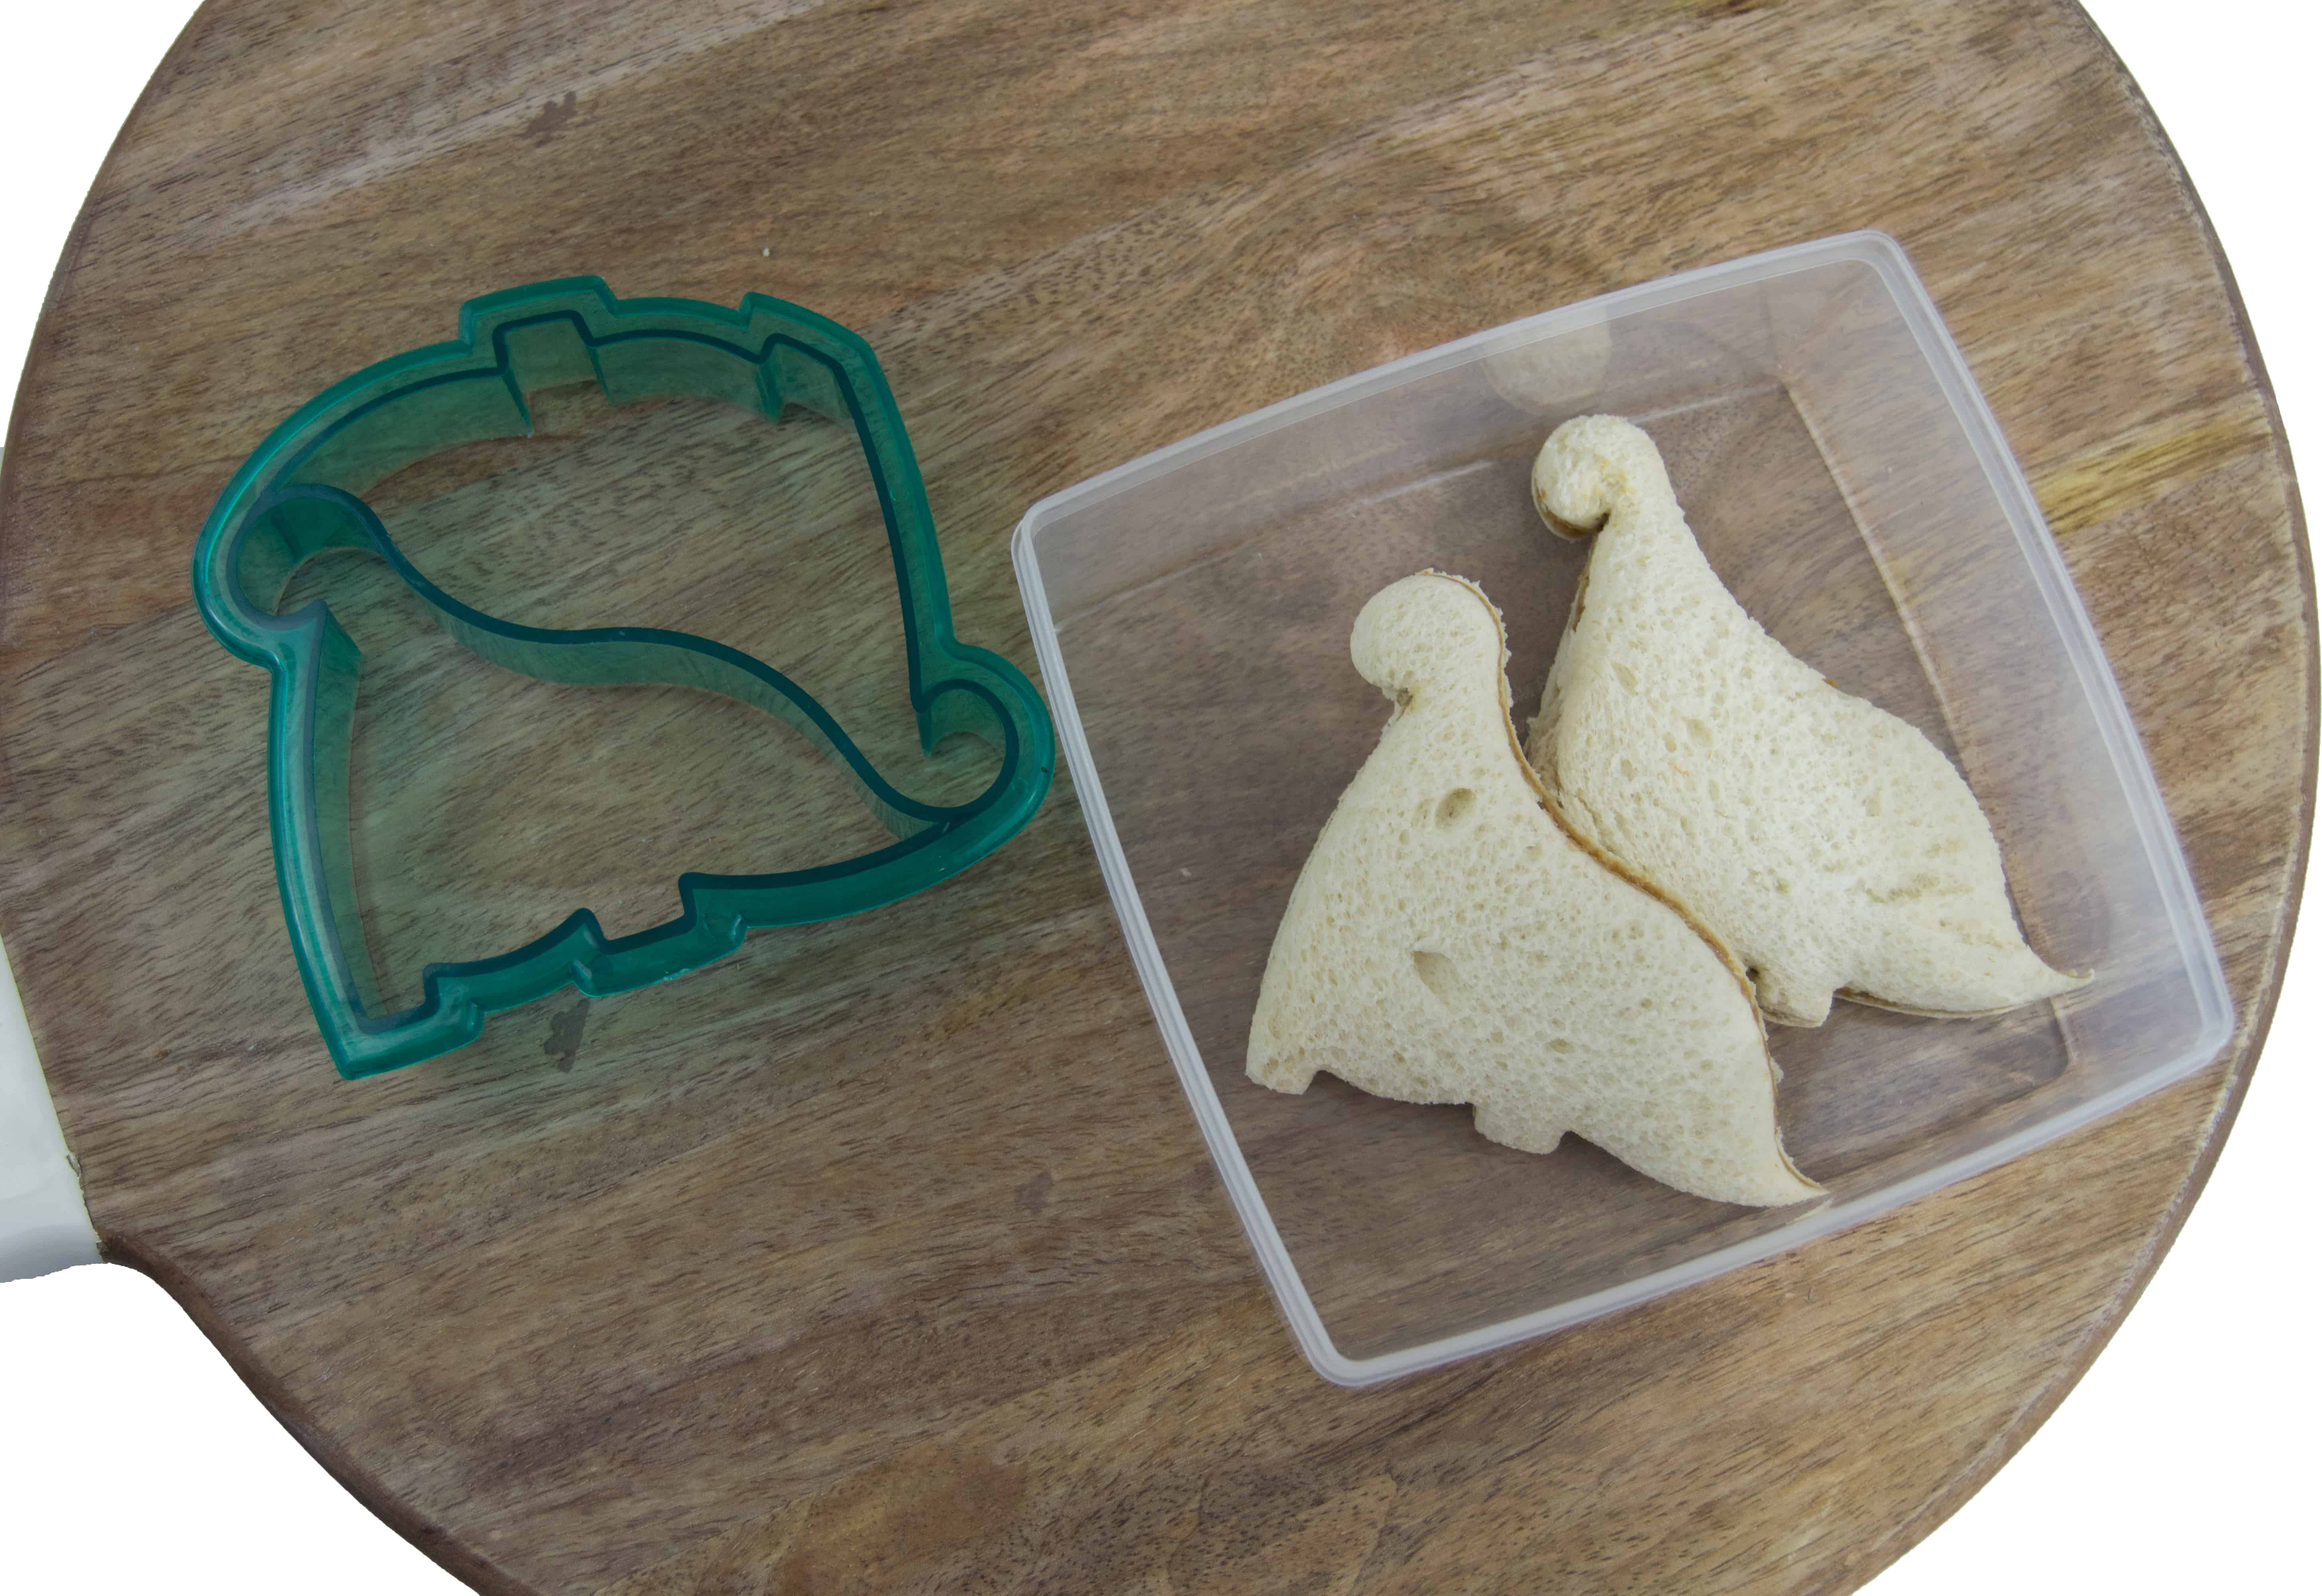 Use fun sandwich cutters to make school lunch more fun for picky eaters. School lunch hack!